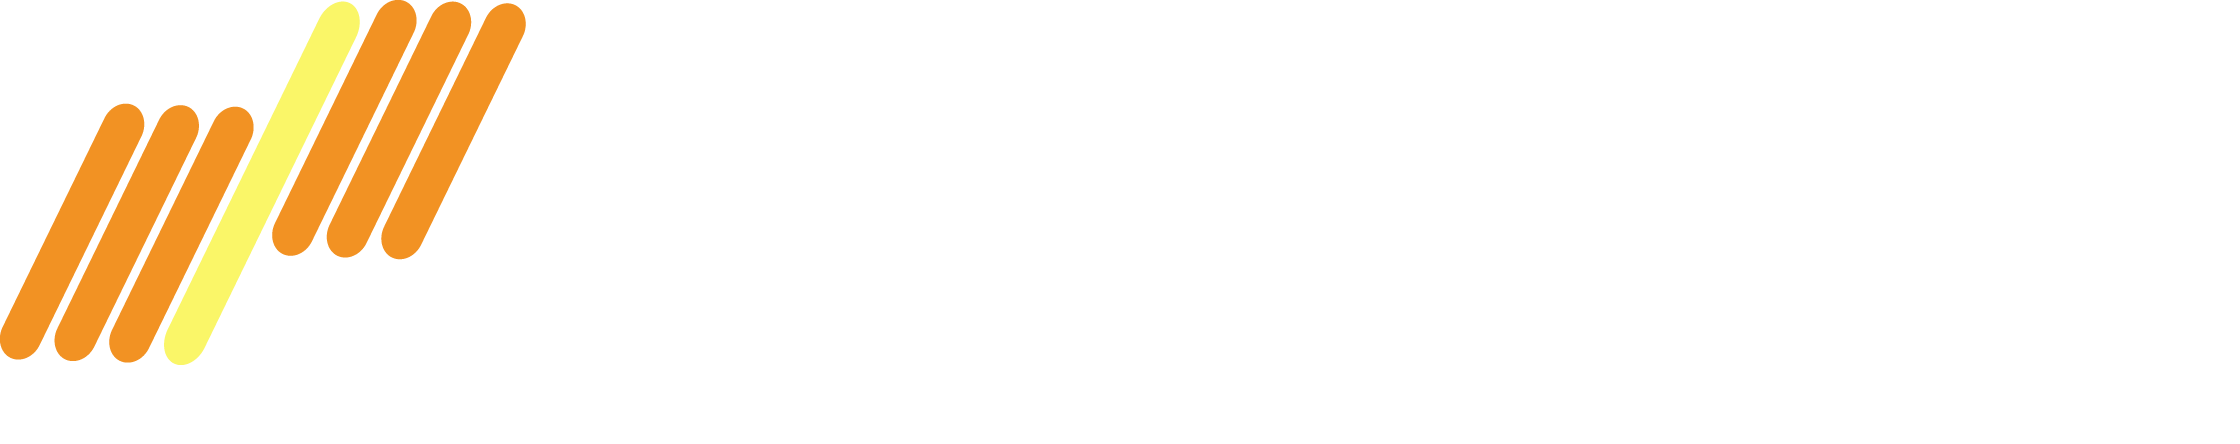 Systor Vest AS